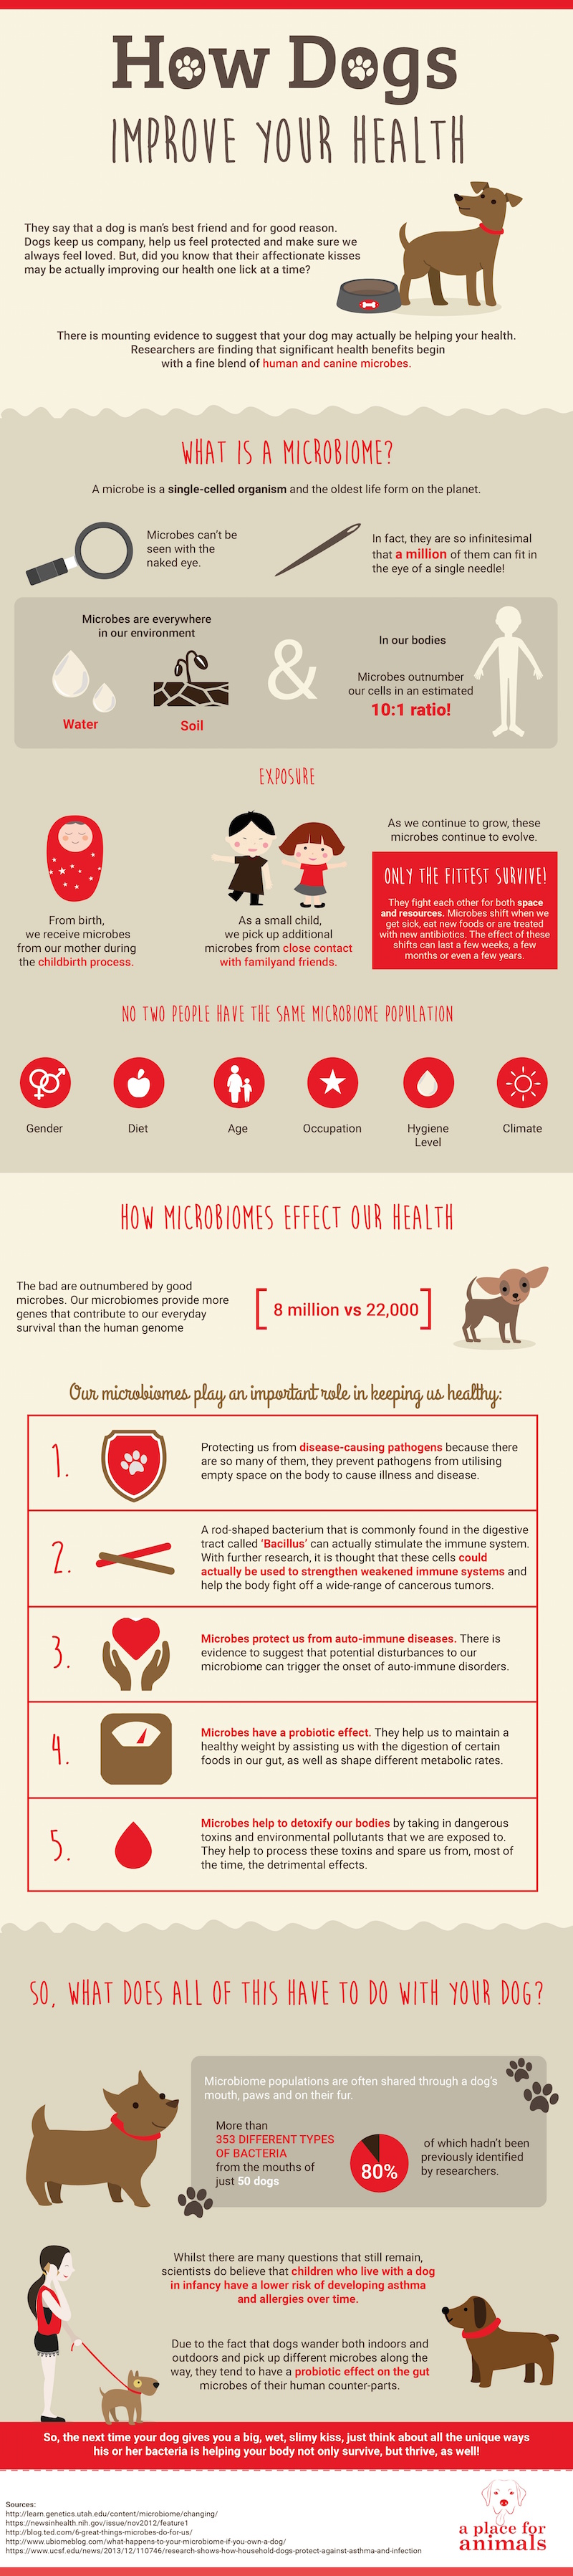 Infographic Title: How Dogs Improve Your Health